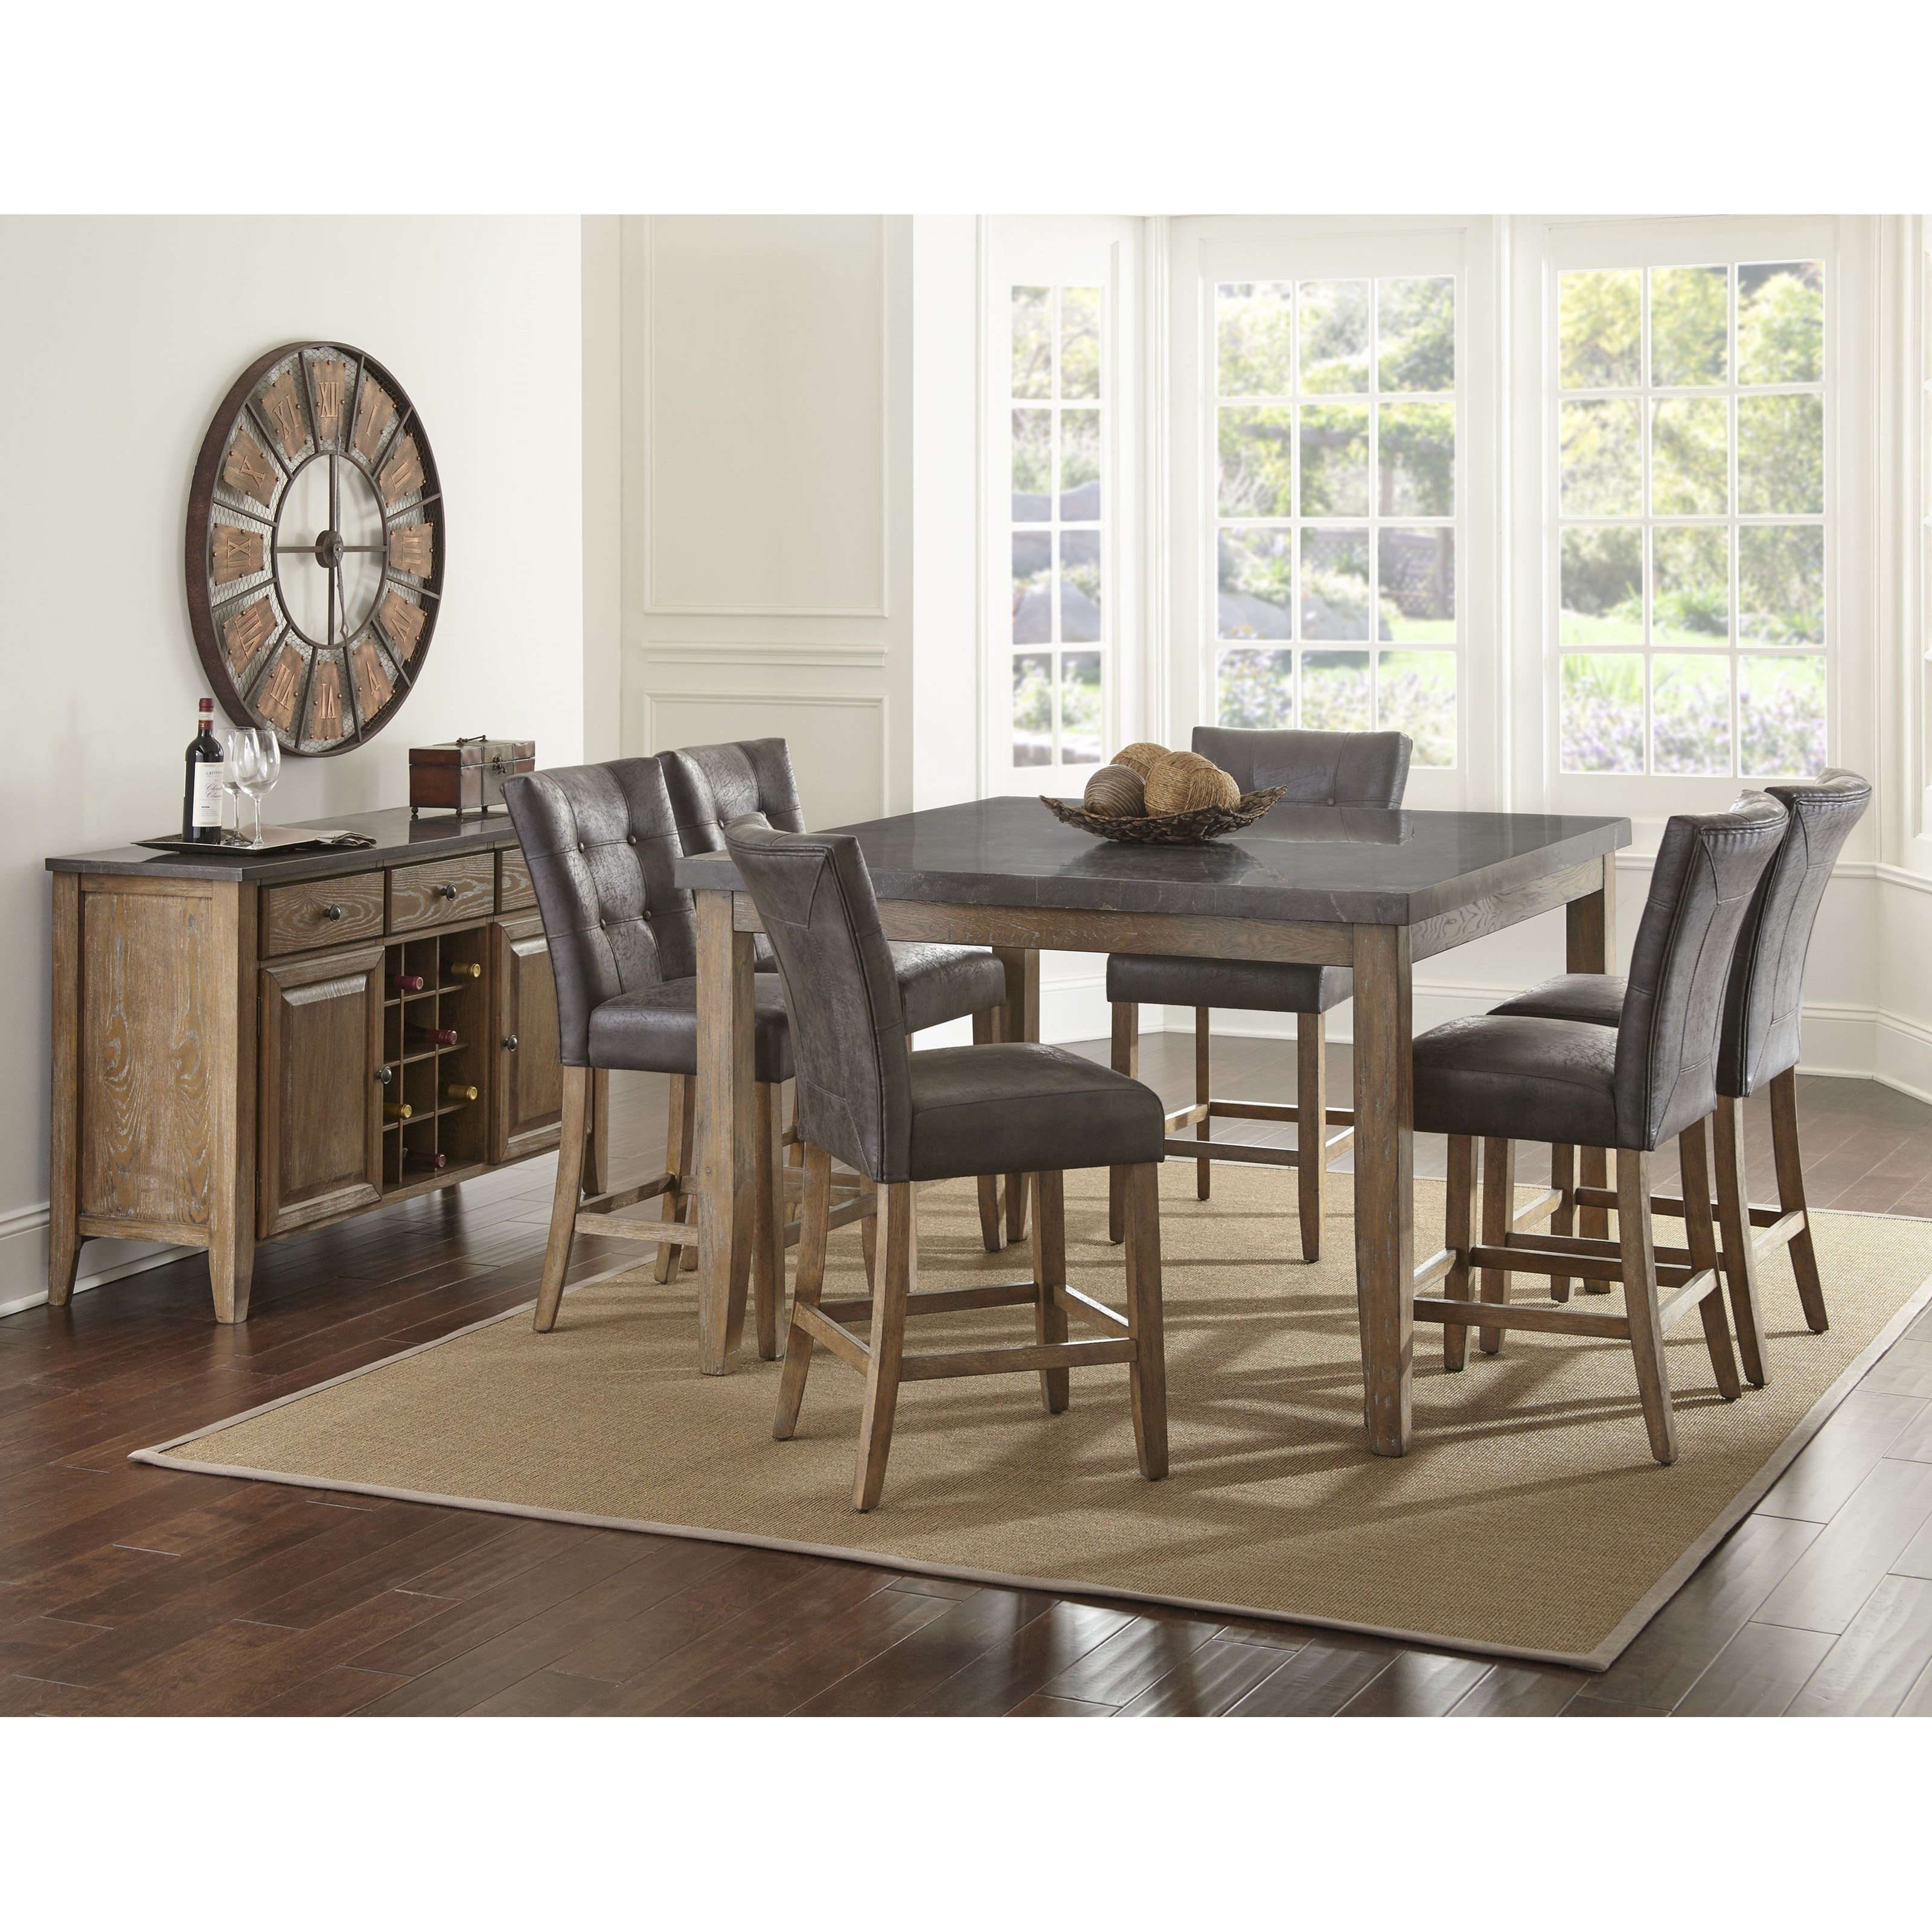 Steve Silver Debby Dining Room Group Sam Levitz